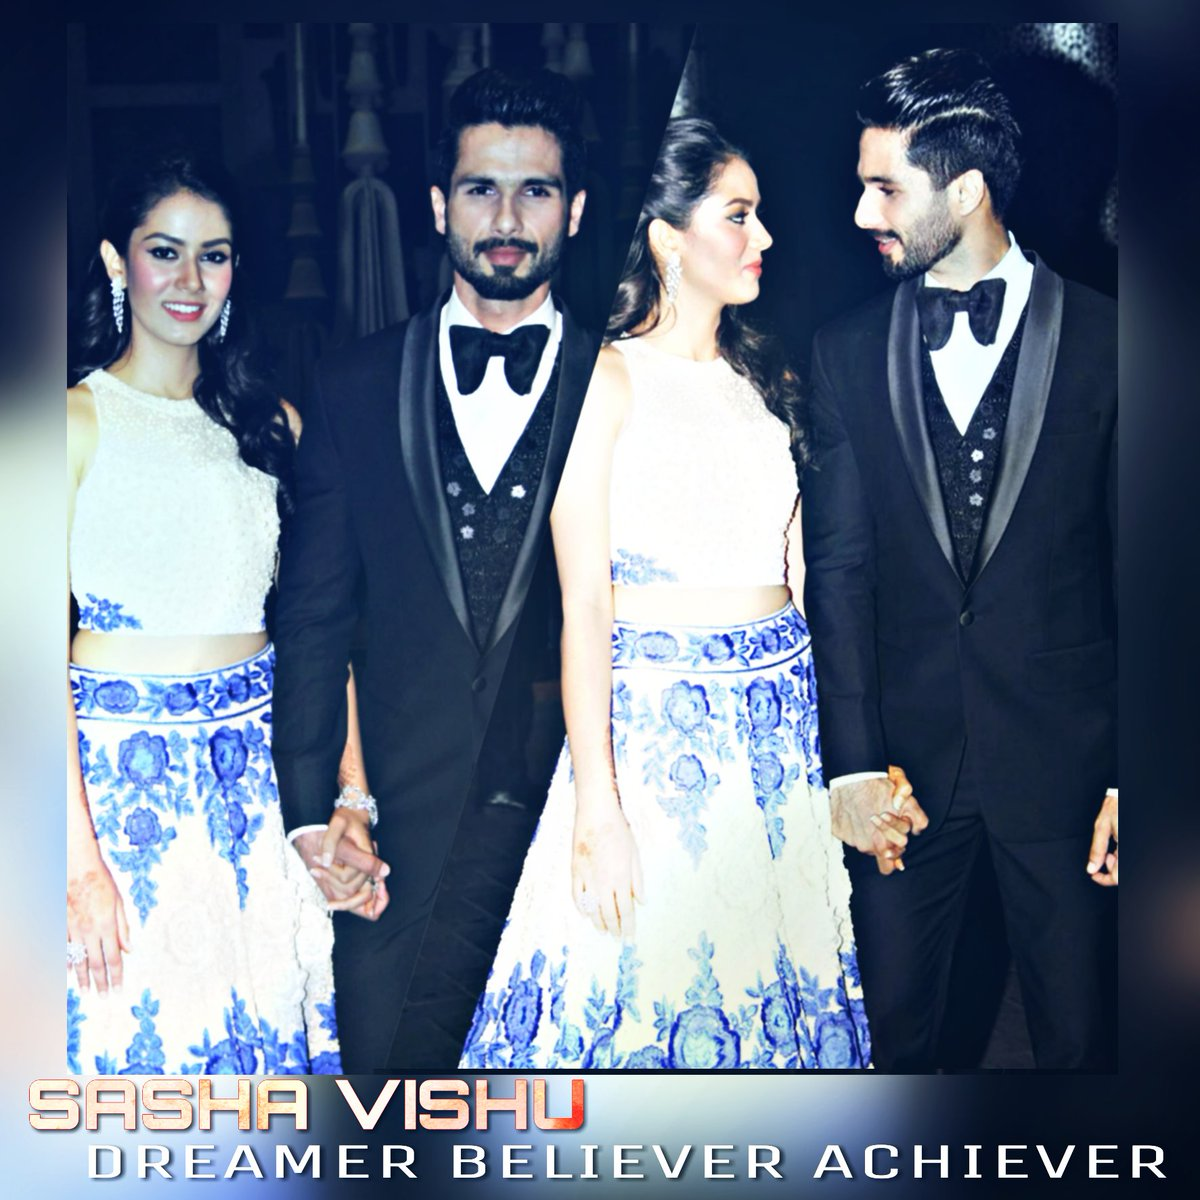 #picoftheday  A Lovely Moment By @shahidkapoor &amp; #MiraRajput  Made For Each Other  Its In #SweetnessOverloaded  @shahidkapoorFC  LoveiT<br>http://pic.twitter.com/fqIZsKpq75